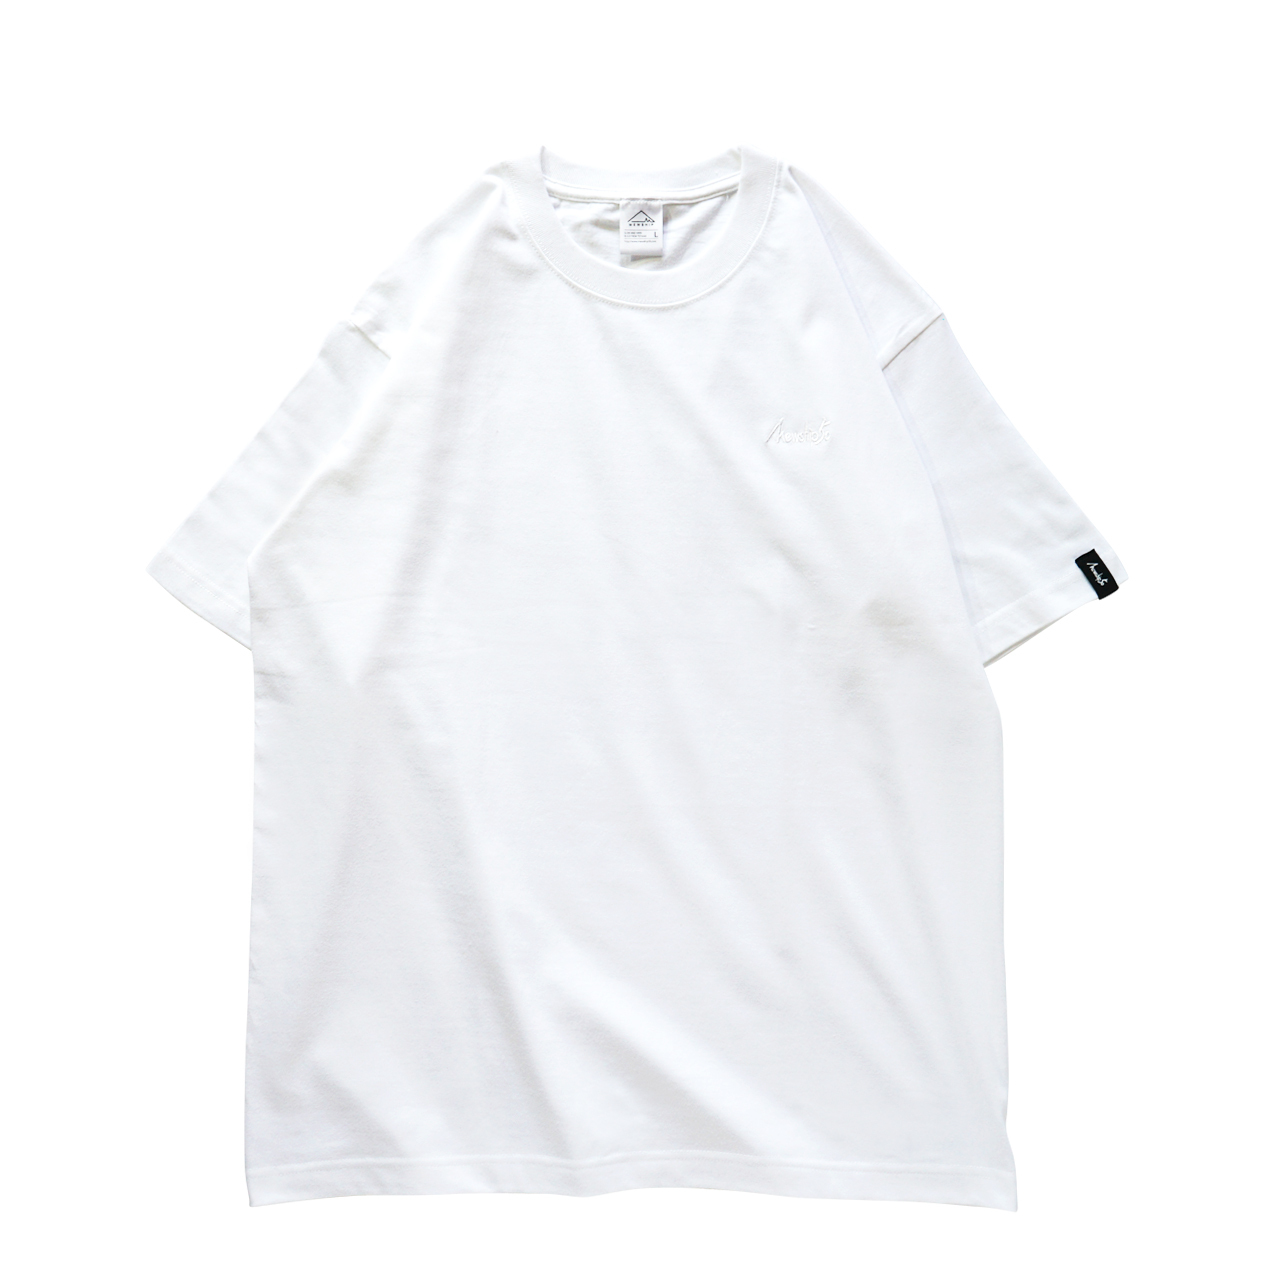 BASIC LOGO 019 S/S CT <White×White> - 画像1